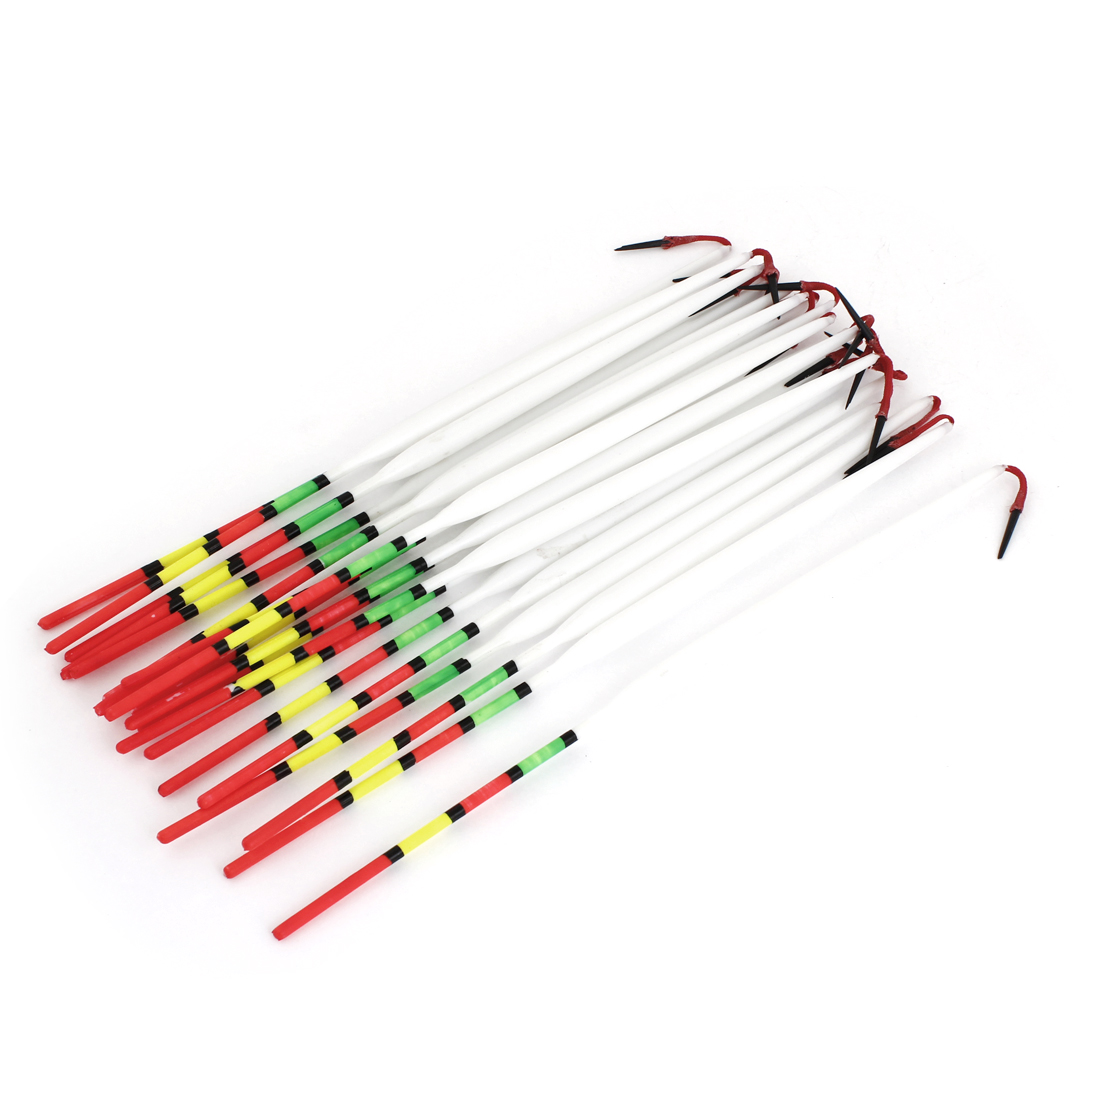 Unique Bargains 20 Pcs Fishing Floaters Bobbers 24cm Long for Fresh or Salt Water by